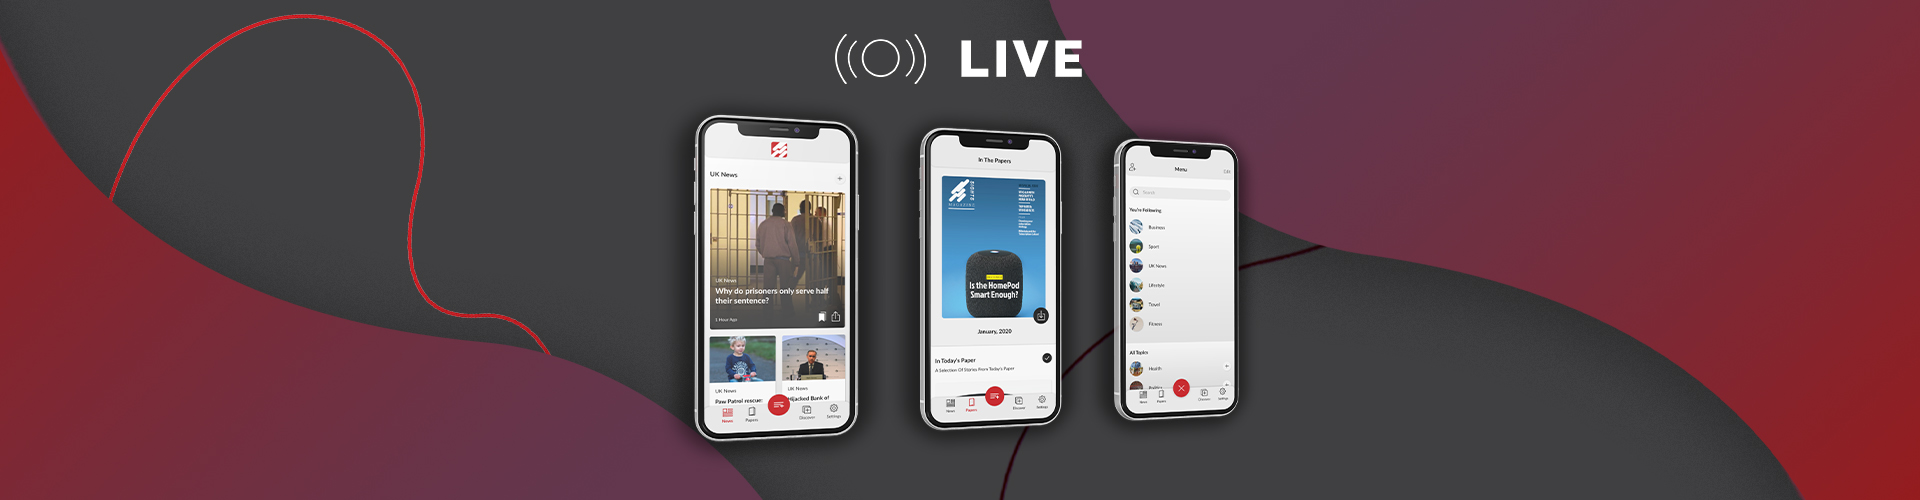 PageSuite Announce Launch of Brand-New Live News App